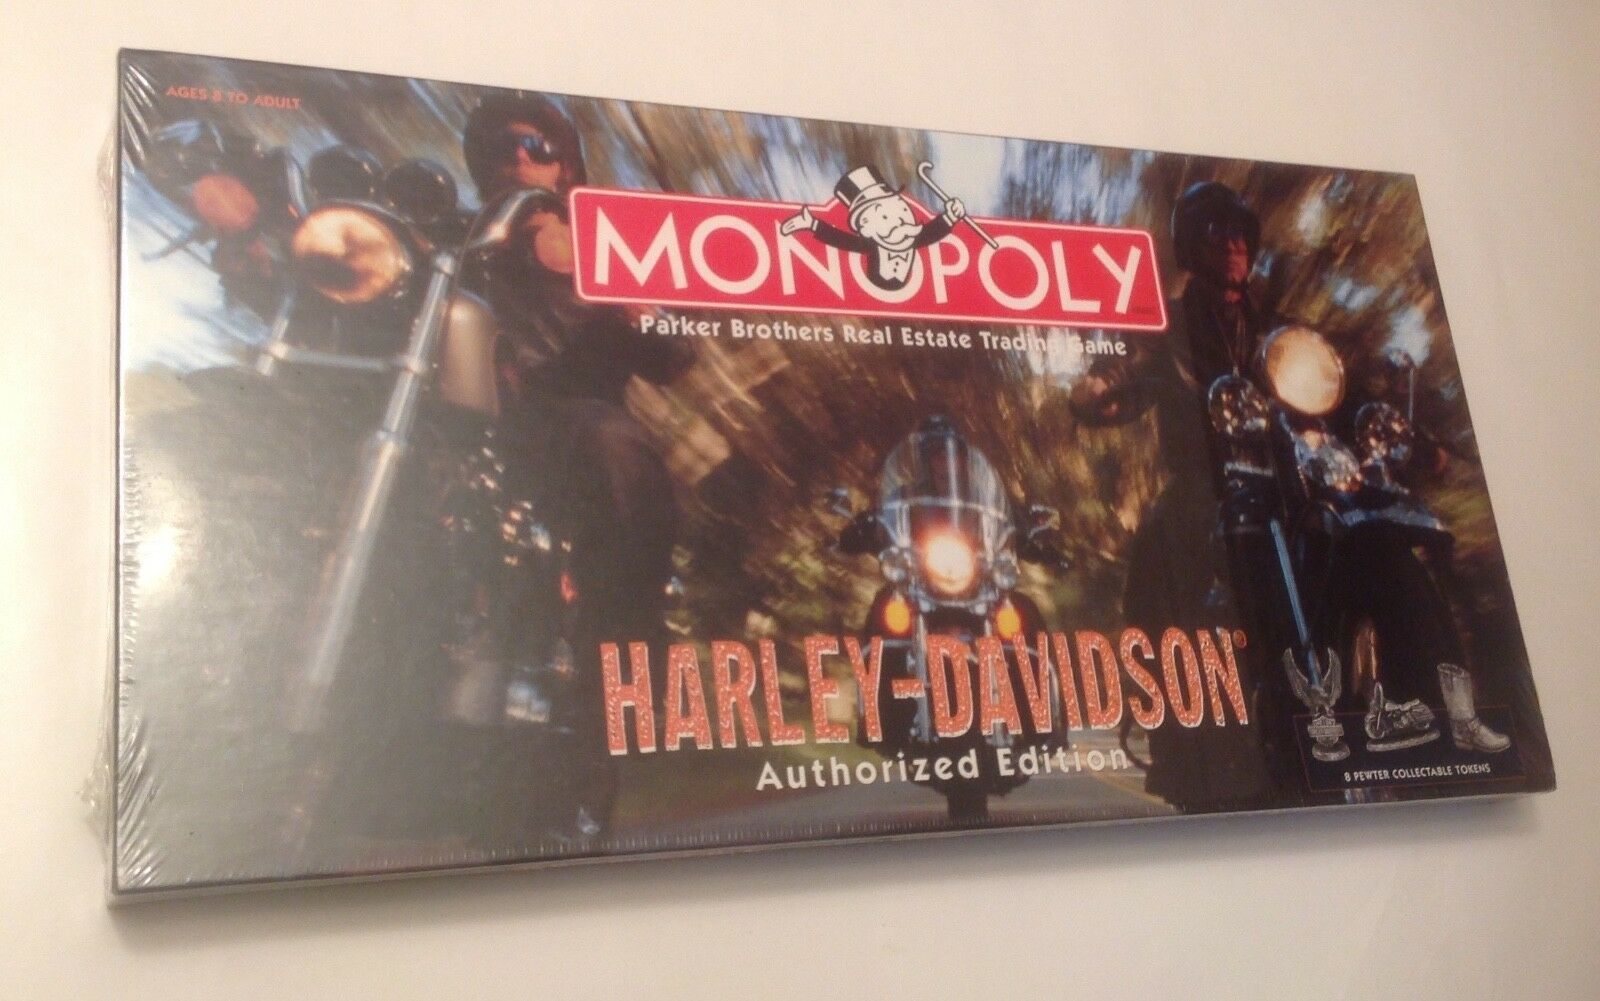 PARKER BredHERS  Harley Davidson MONOPOLY BOARD GAME  AUTHORIZED EDITION  NEW